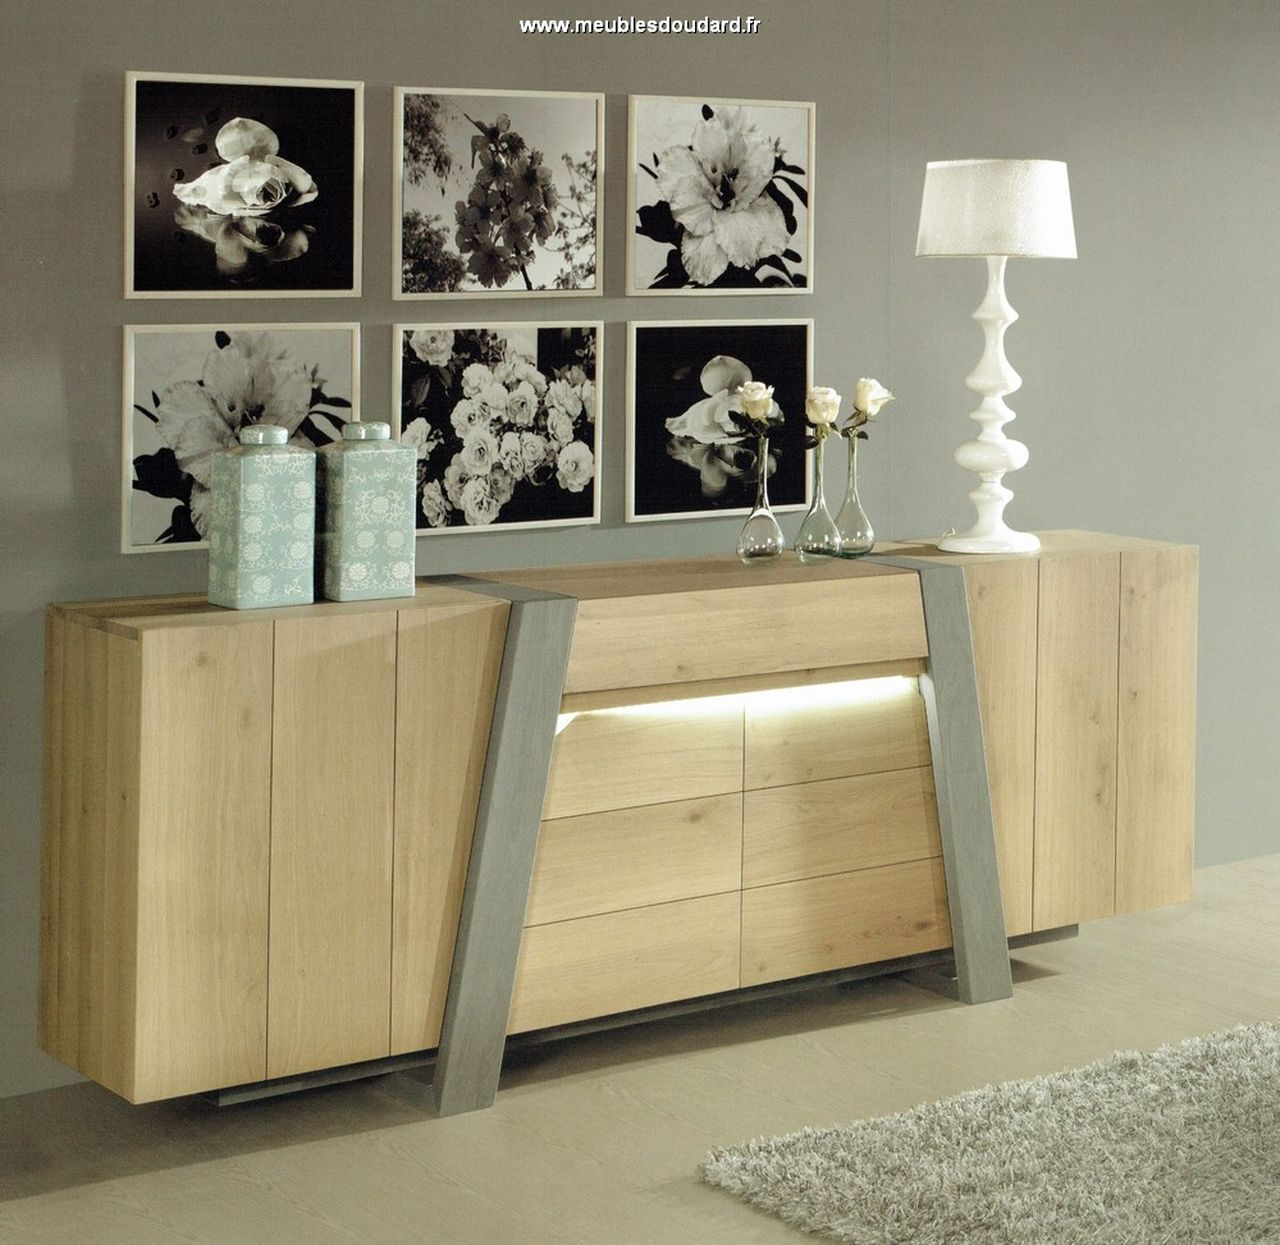 meubles modernes bahut contemporain en bois massif salle. Black Bedroom Furniture Sets. Home Design Ideas